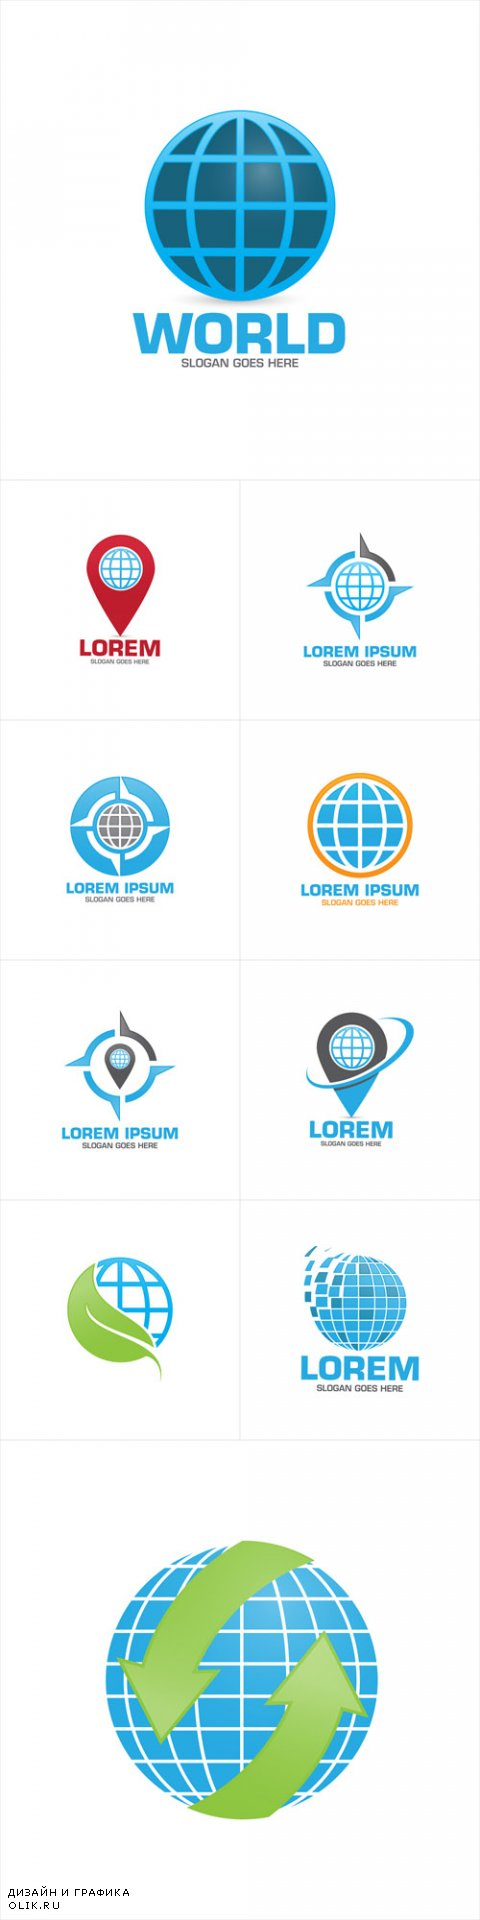 Vector Abstract Digital World Sphere Logo Icons